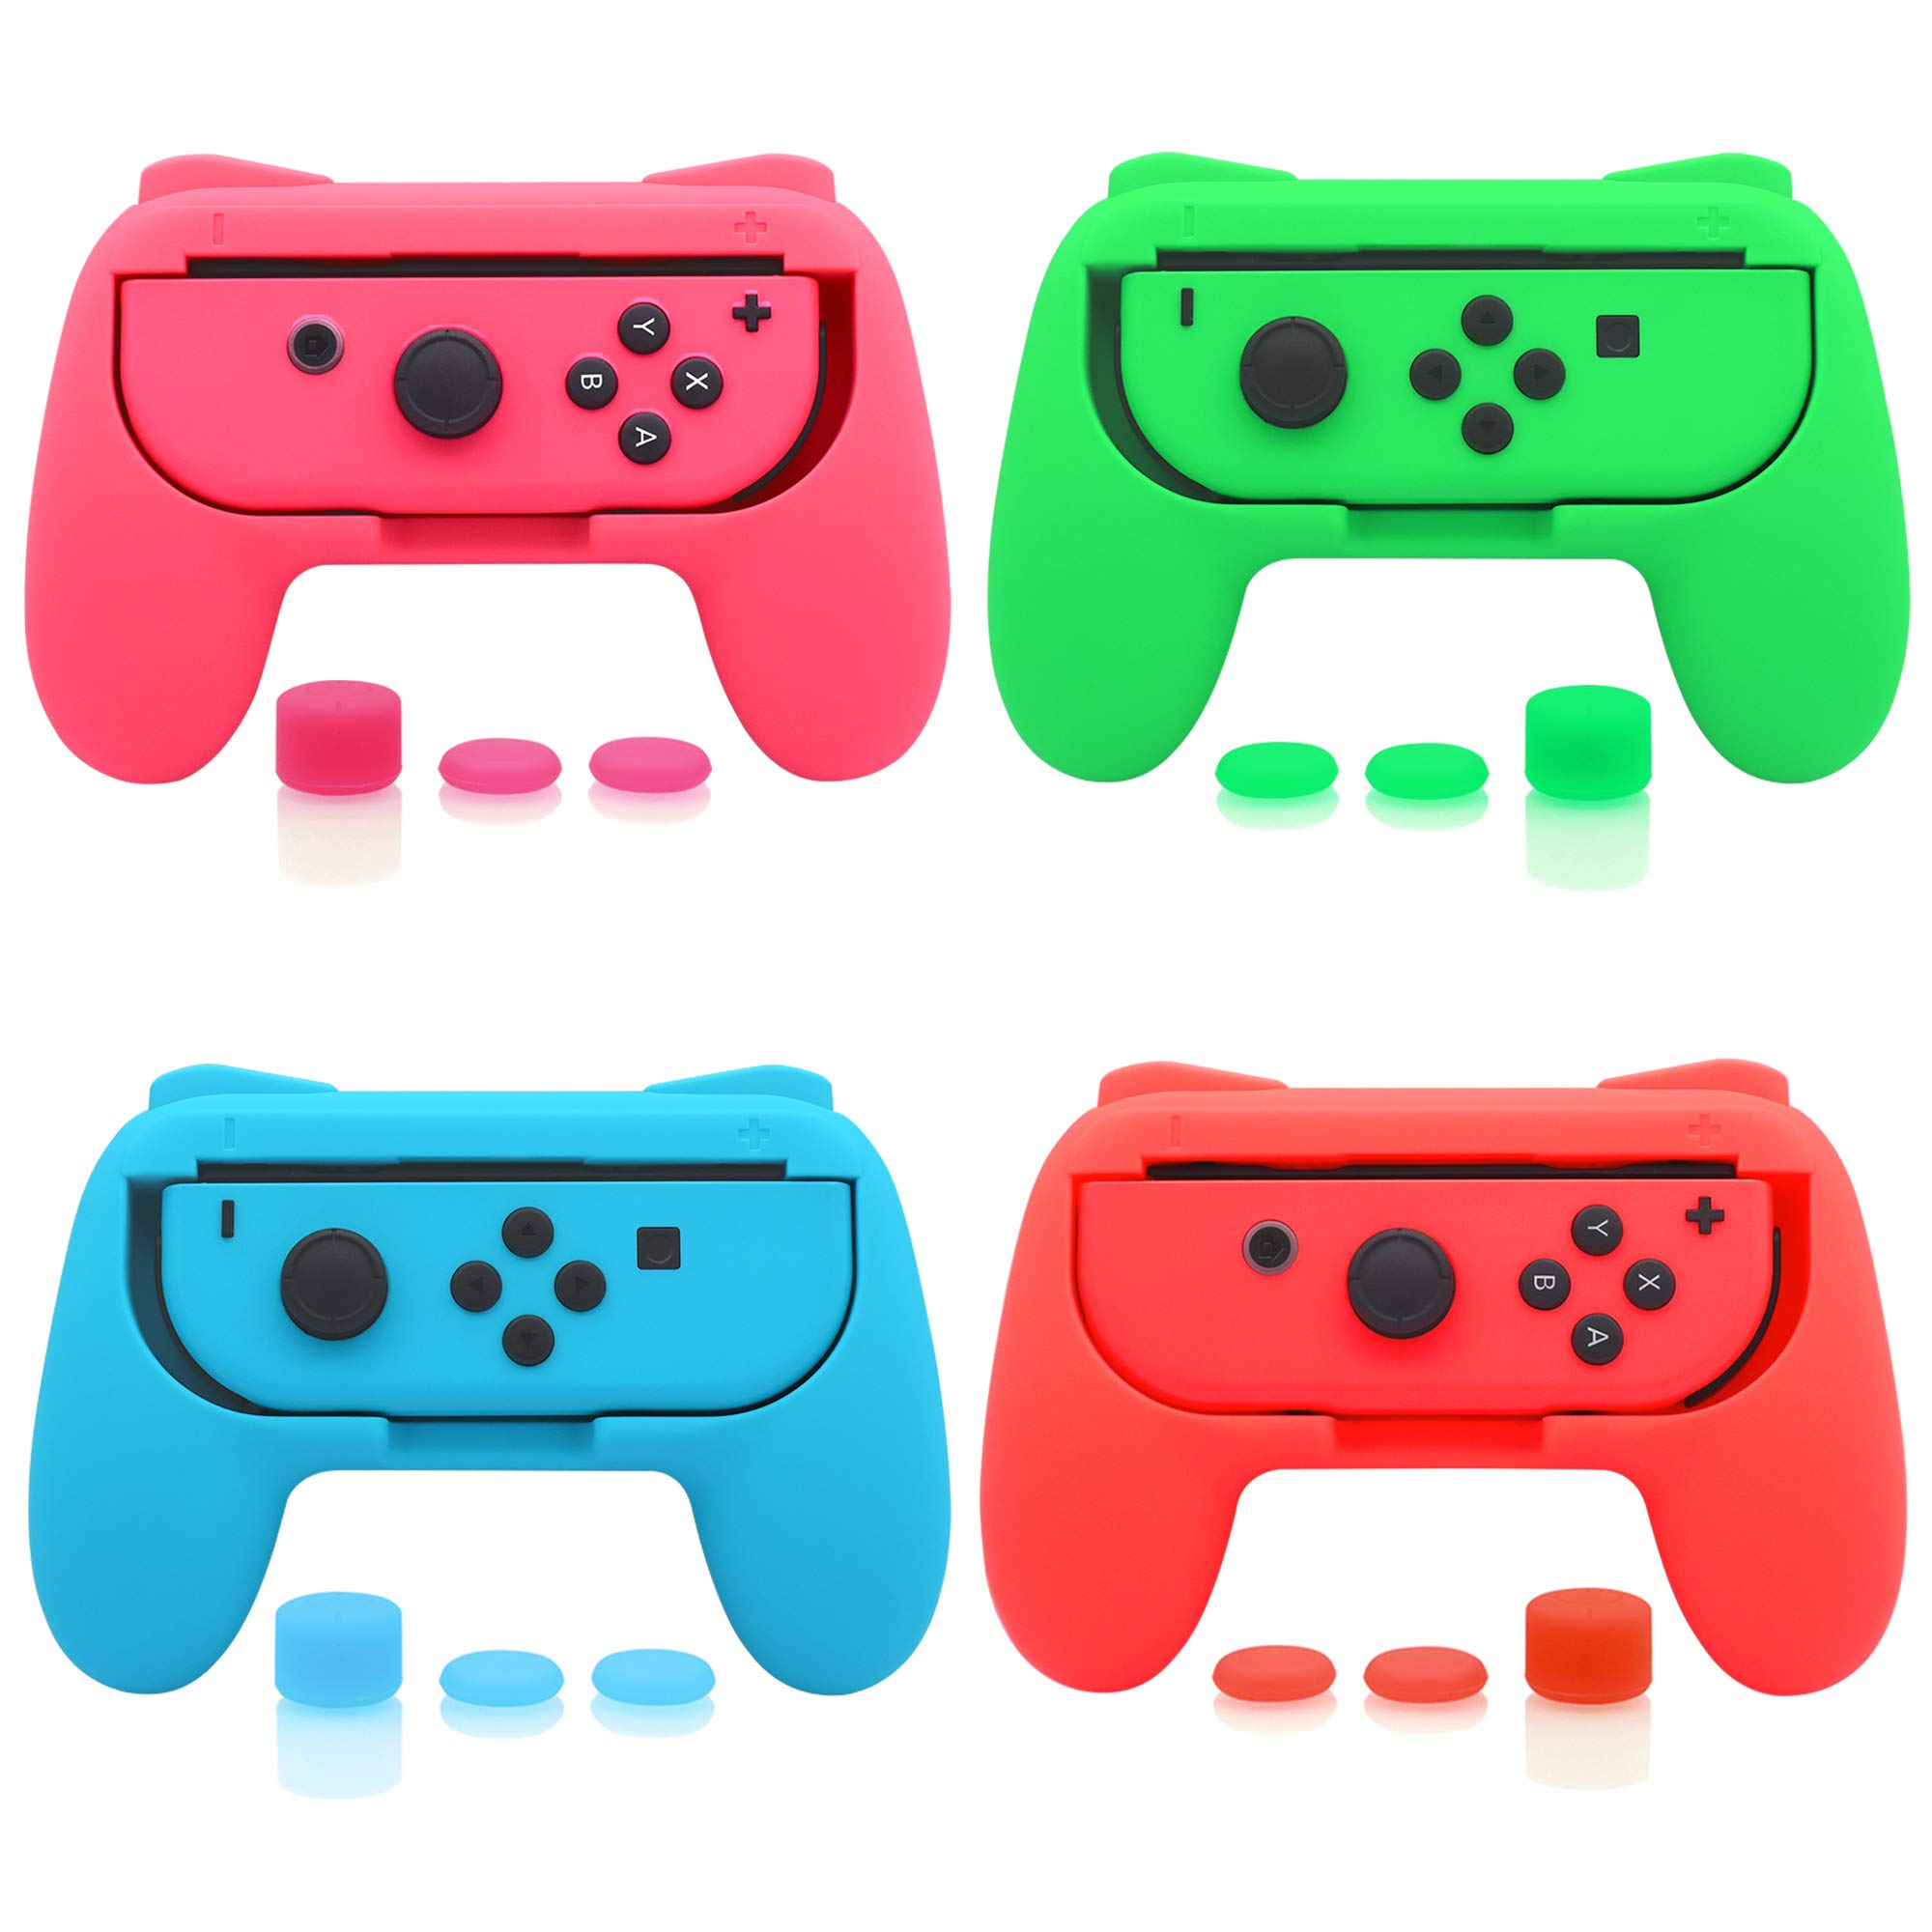 FASTSNAIL 4 Pack Grips Kit for Nintendo Switch Animal Crossing Joy-Con & OLED Model Joycon, Wear-Resistant Grip Controller Compatible with Joy-con with 12 Thumb Grip (Orange, Purple, Green and Yellow)